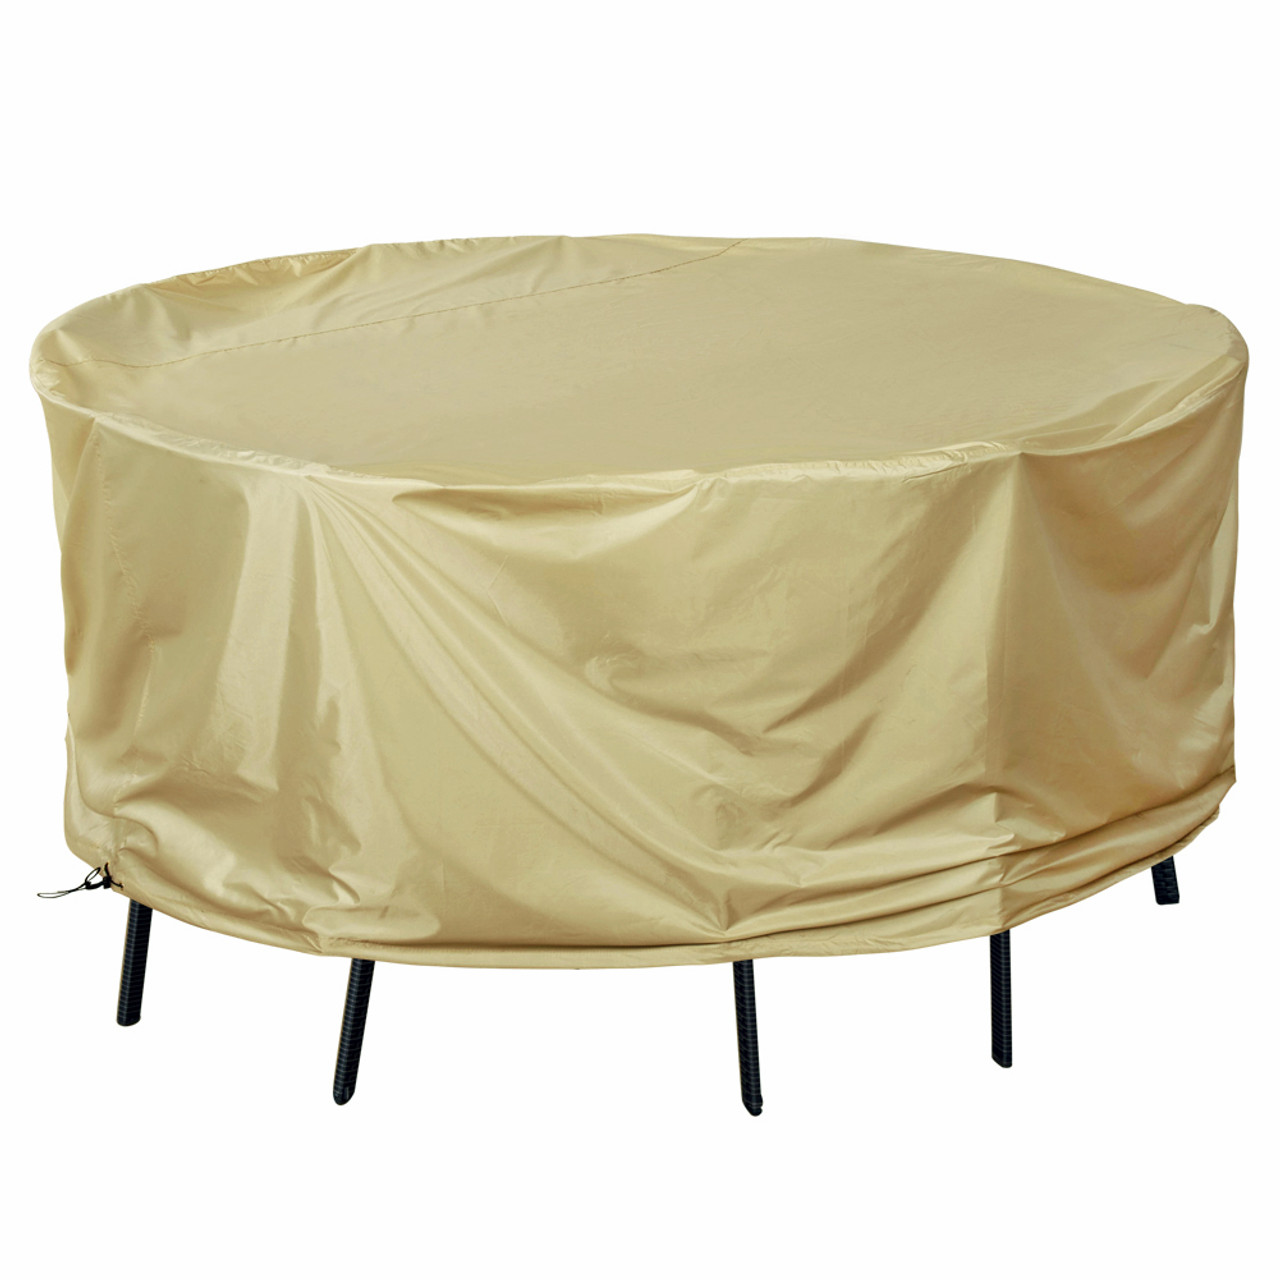 Patio Heavy Duty Round Tableu0026Chair Set Cover With PVC Coating, Fit Up To  79Dia X 35H ...